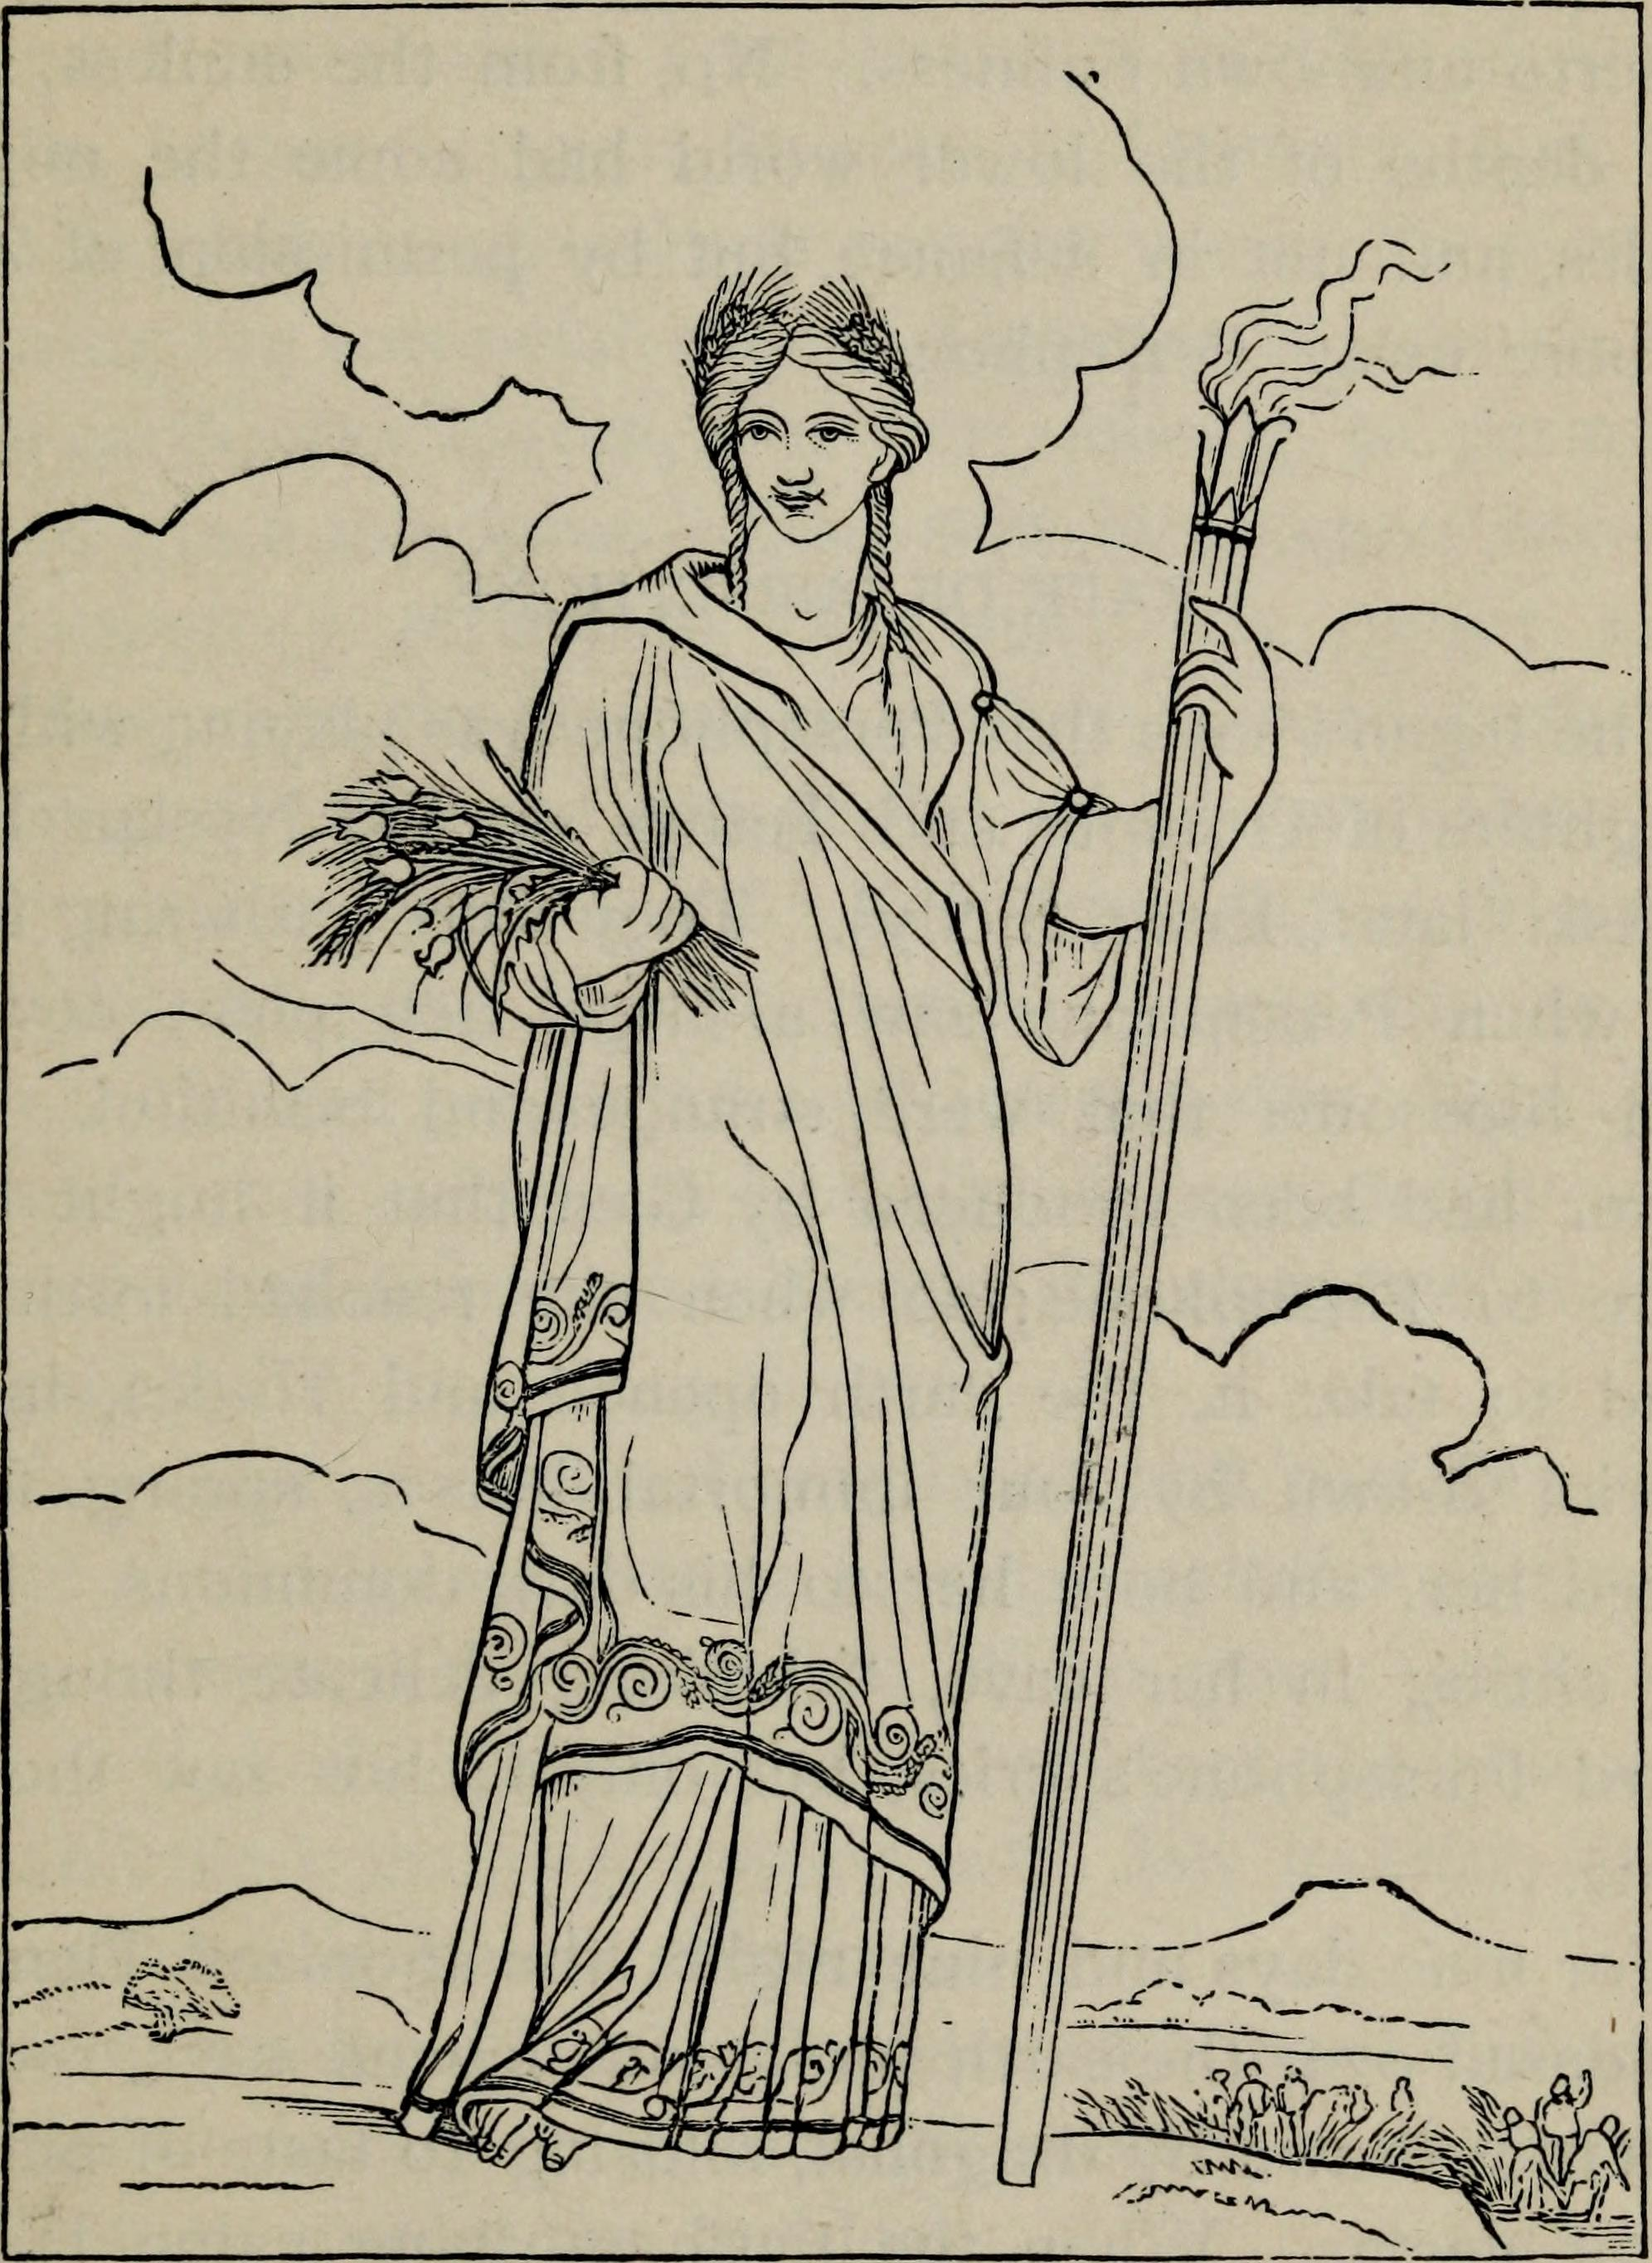 Line drawing of the goddess Demeter, standing with staff and arms filled with wheat.